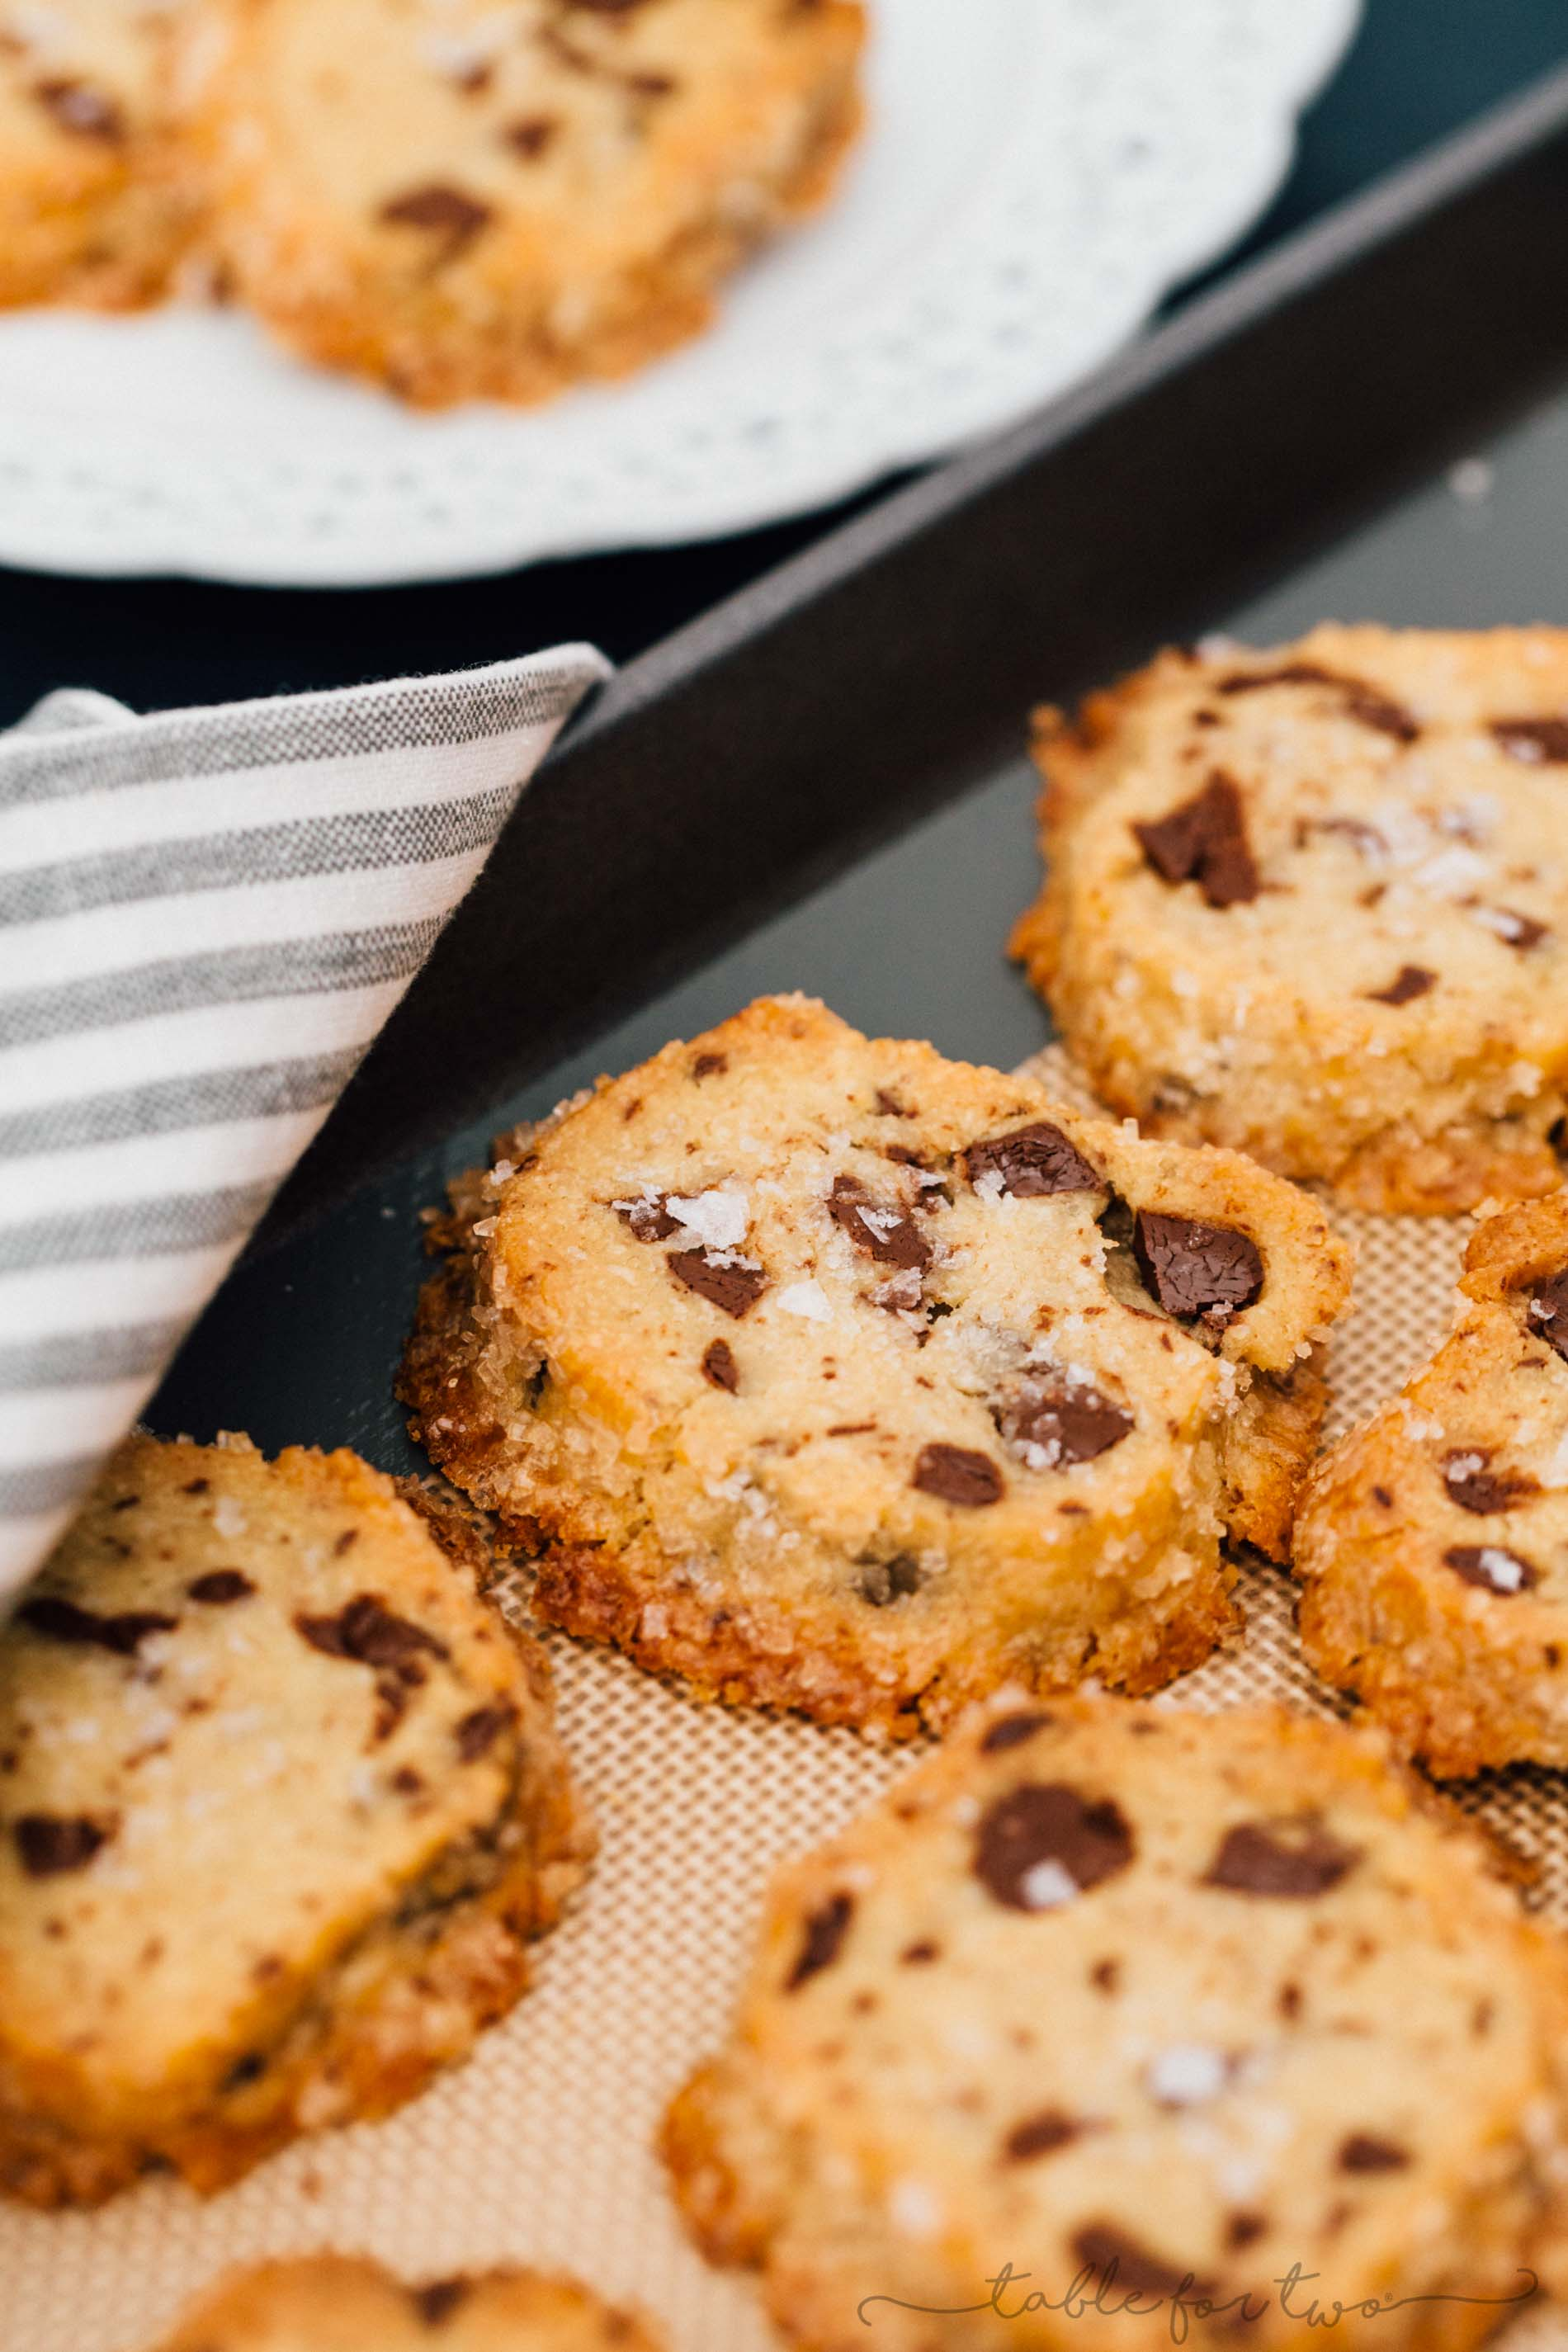 The cookies that broke the internet. These shortbread-based chocolate chip cookies are unlike any other cookie you've ever had before! You gotta give it a try!